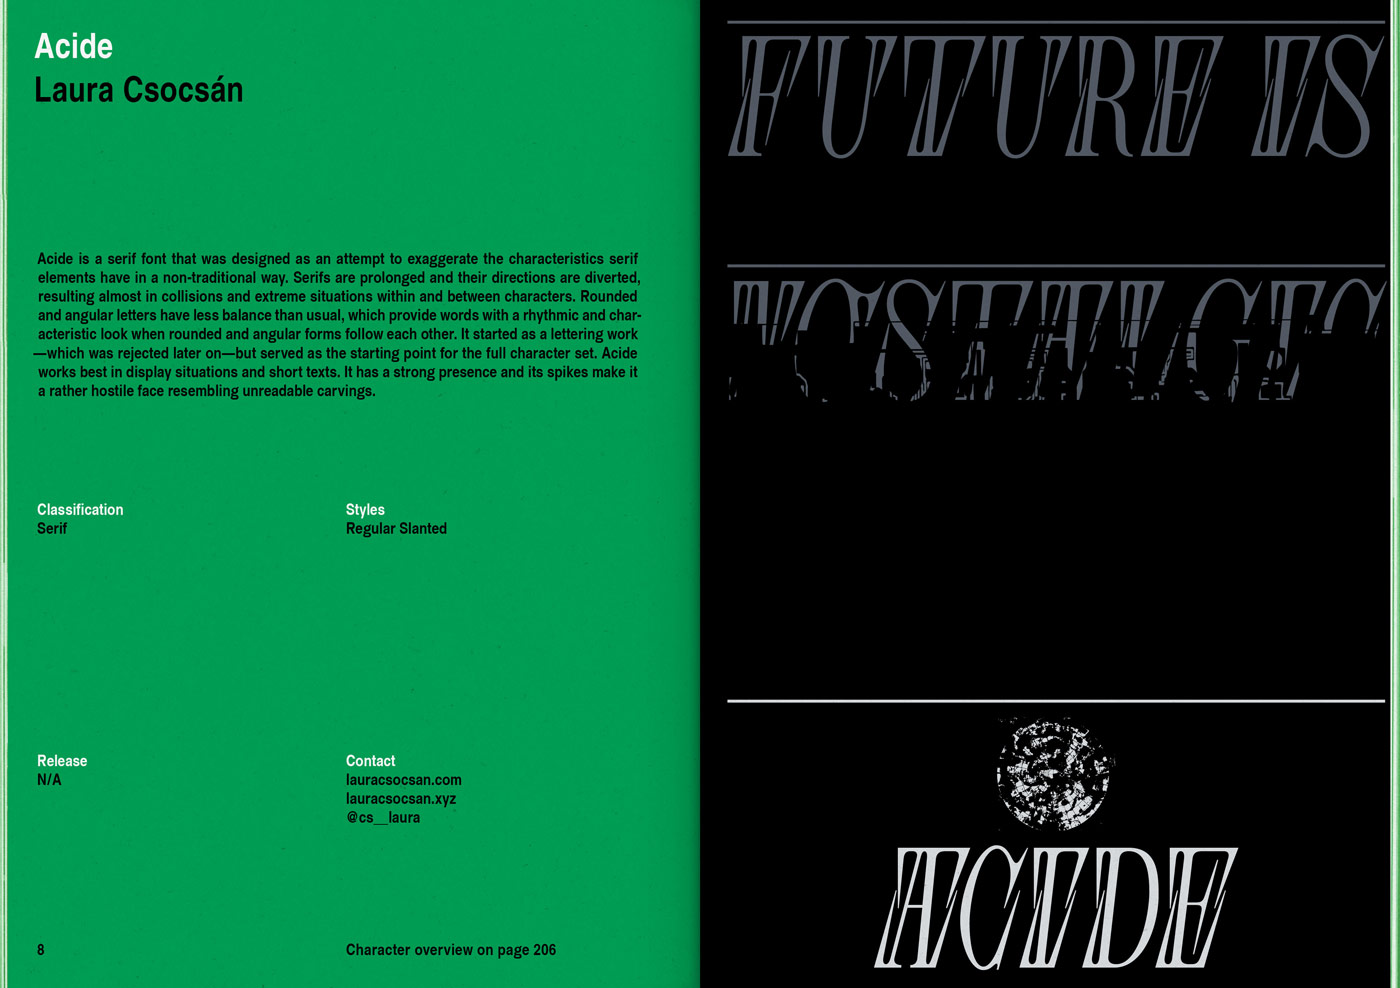 02 collide24 New Aesthetic 2 - Sophia Brinkgerd and Leonhard Laupichler celebrate the release of New Aesthetic 2, this time in collaboration with publishing house Sorry Press